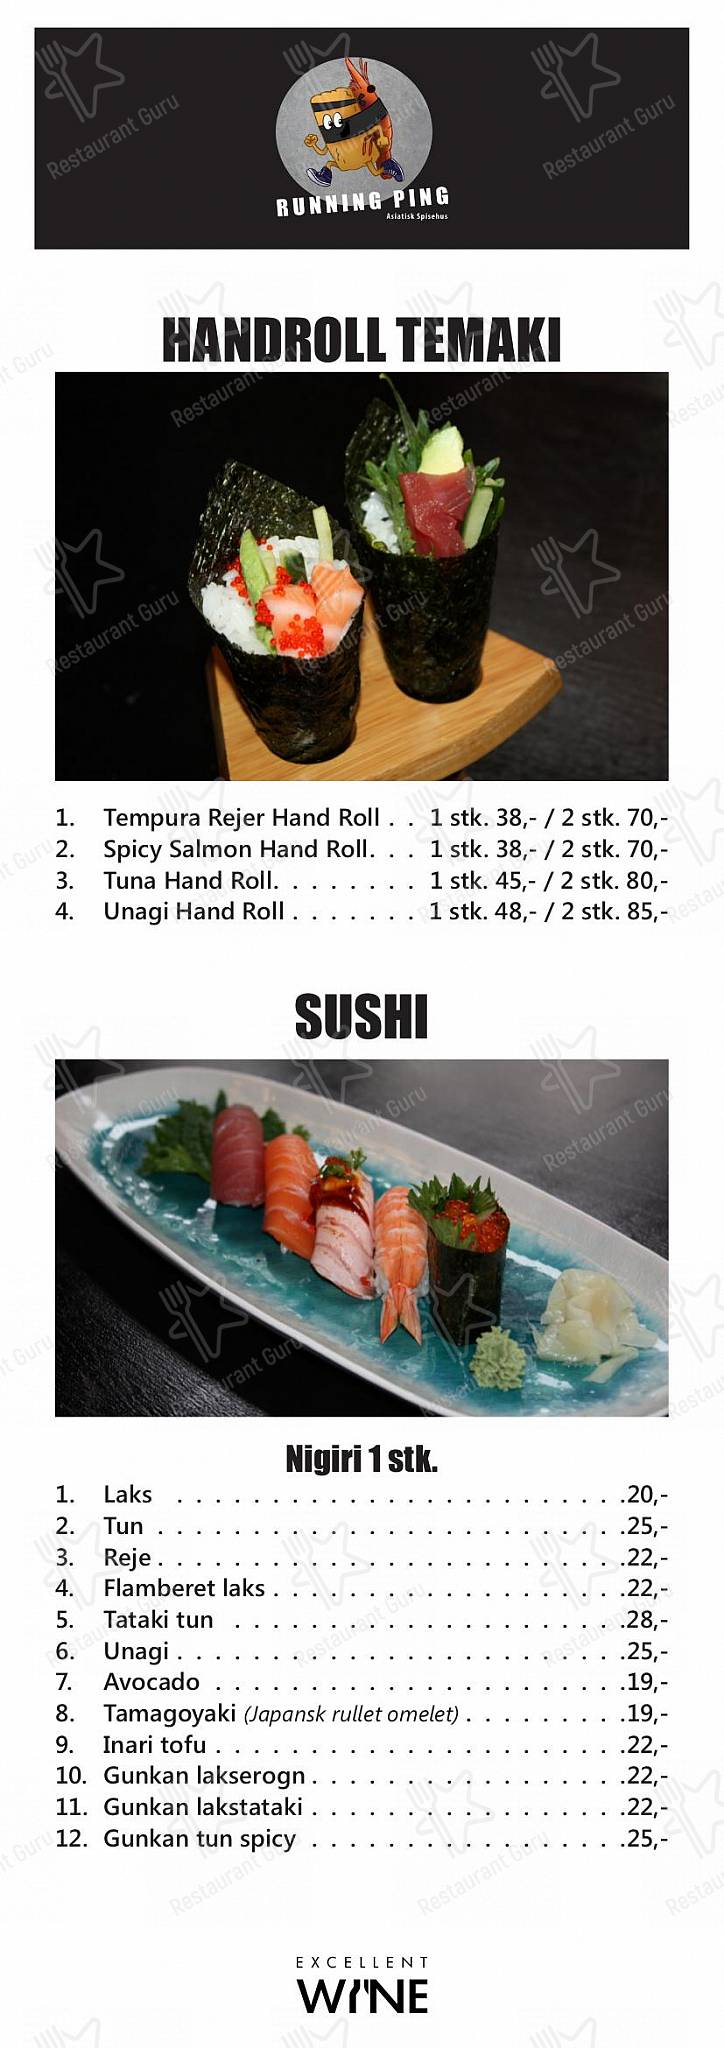 Running Ping menu - dishes and beverages